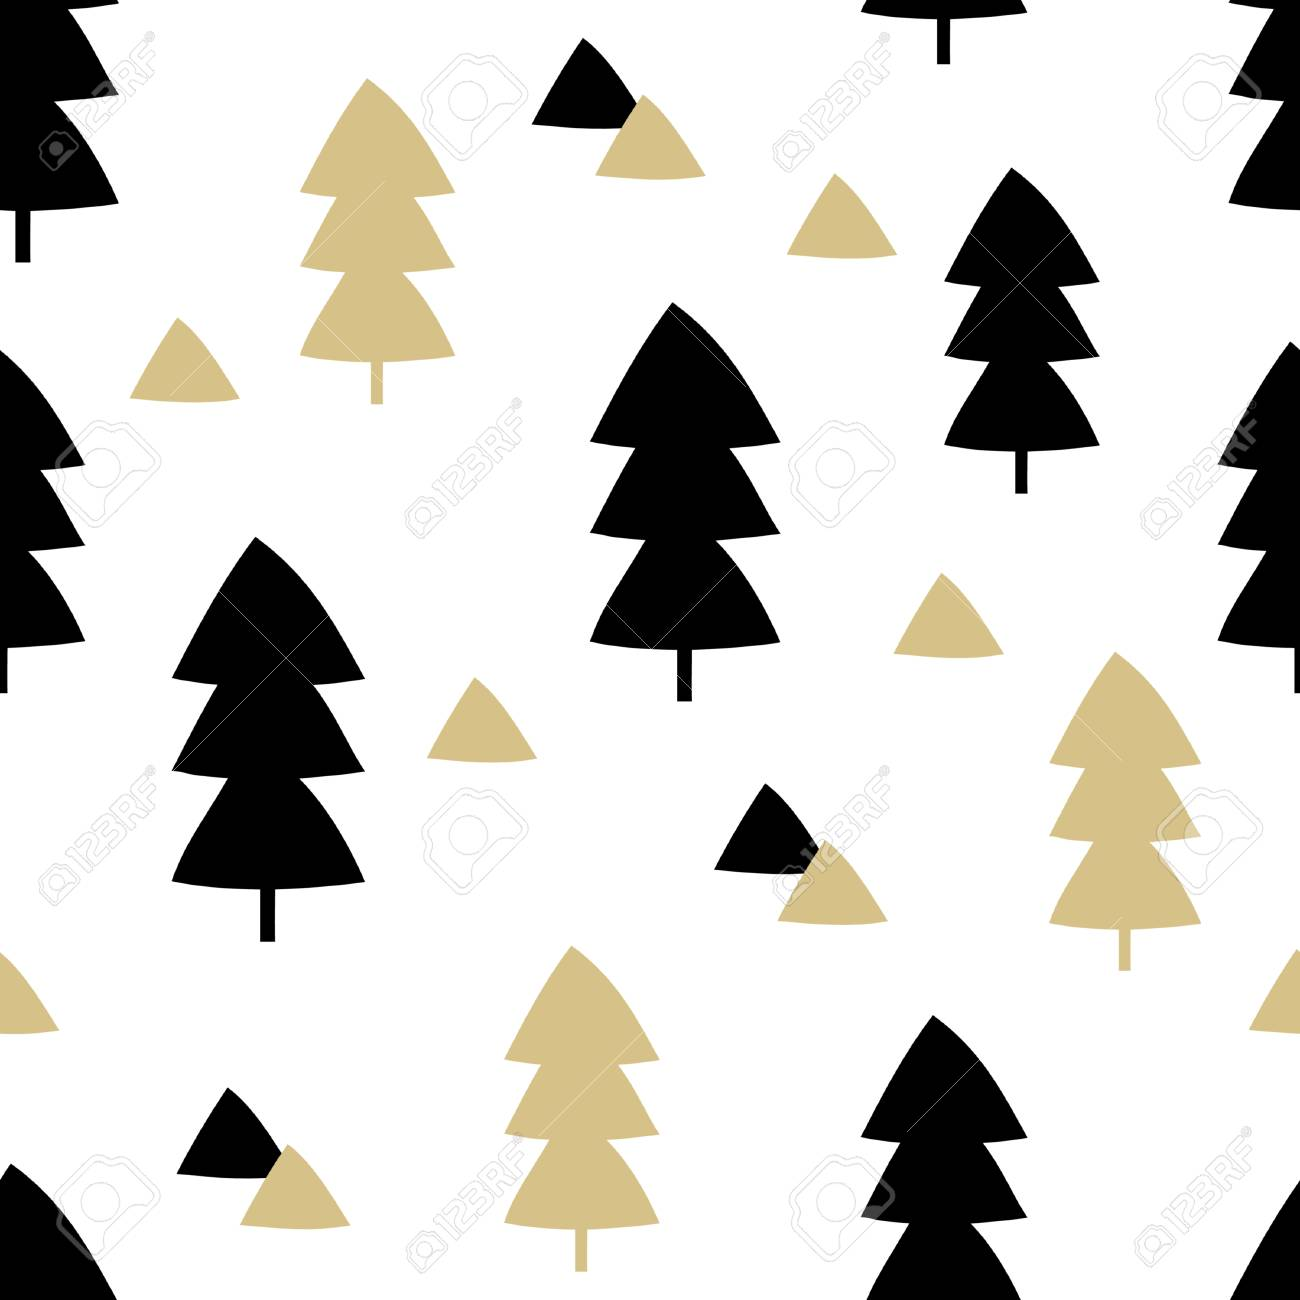 Seamless Repeating Pattern With Christmas Trees And Triangle Shapes In Black Gold On White Background